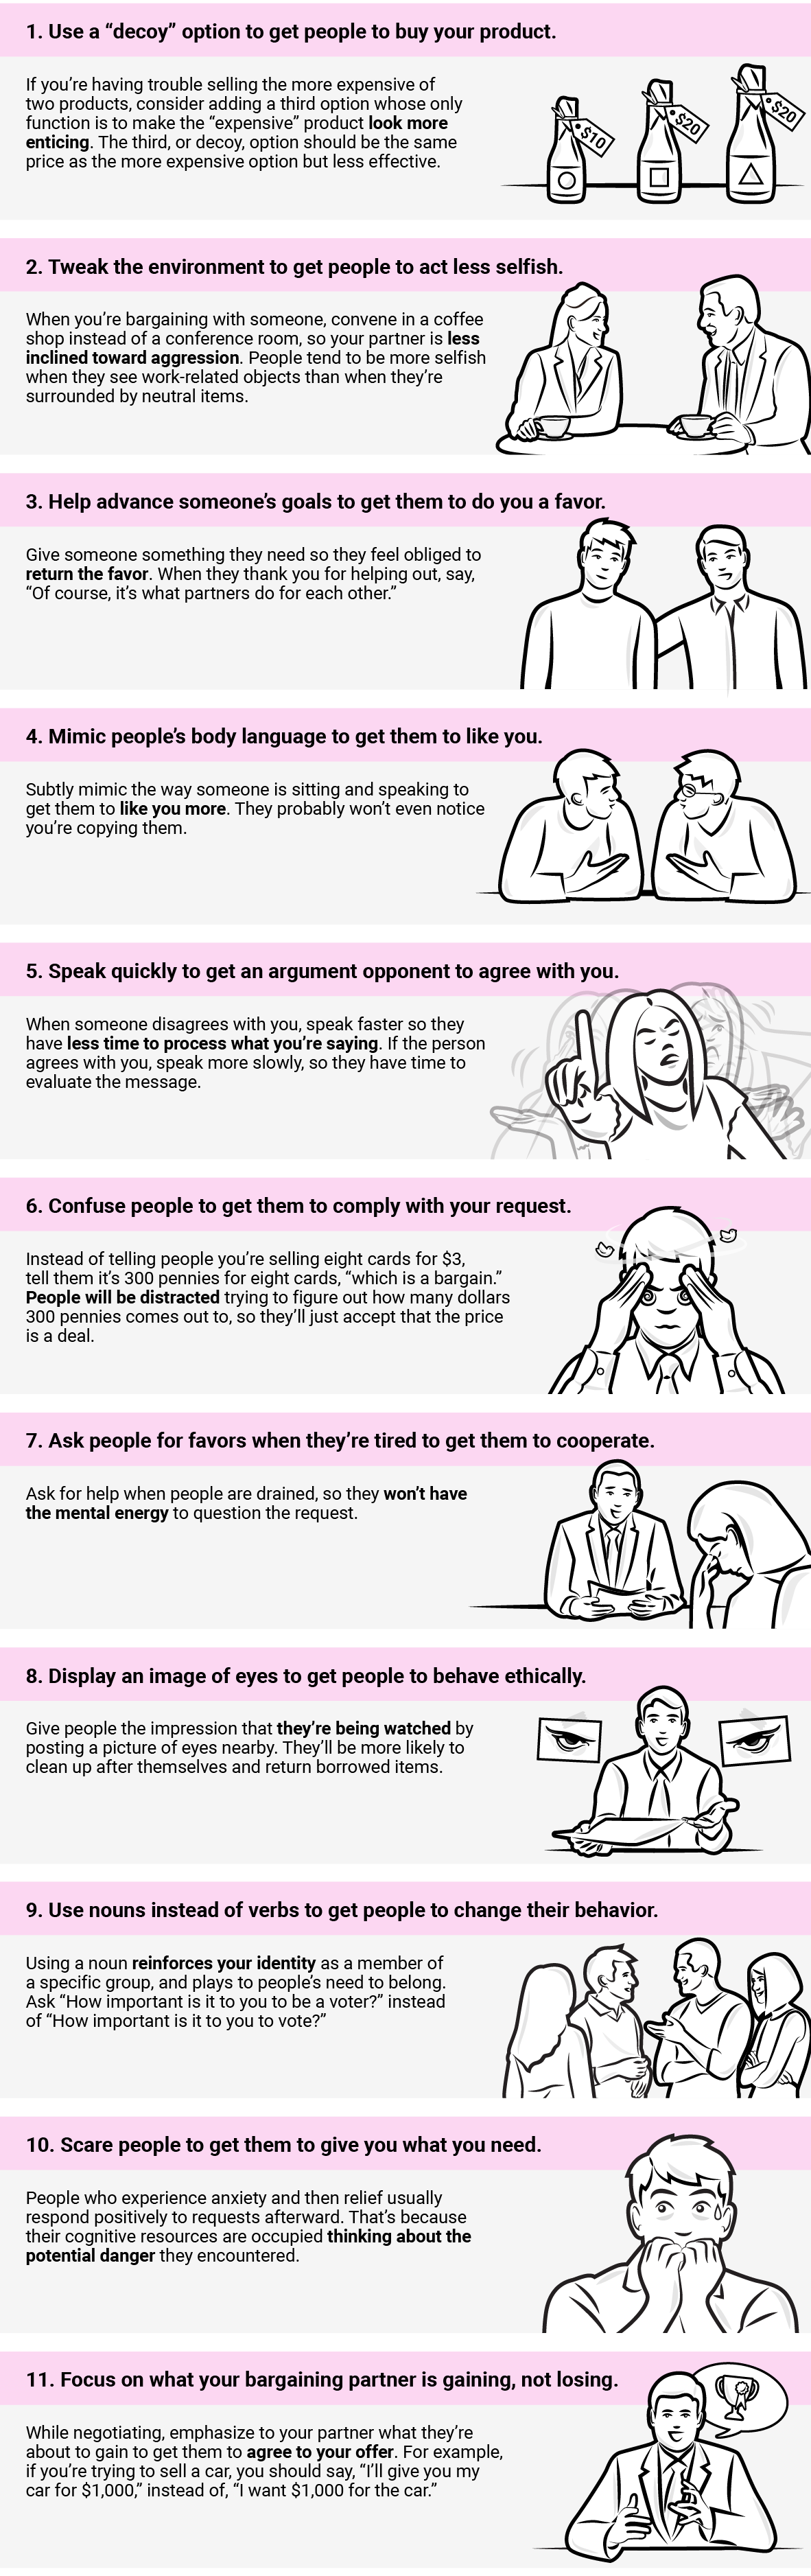 11-psychological-tricks-to-get-people-to-do-what-you-want